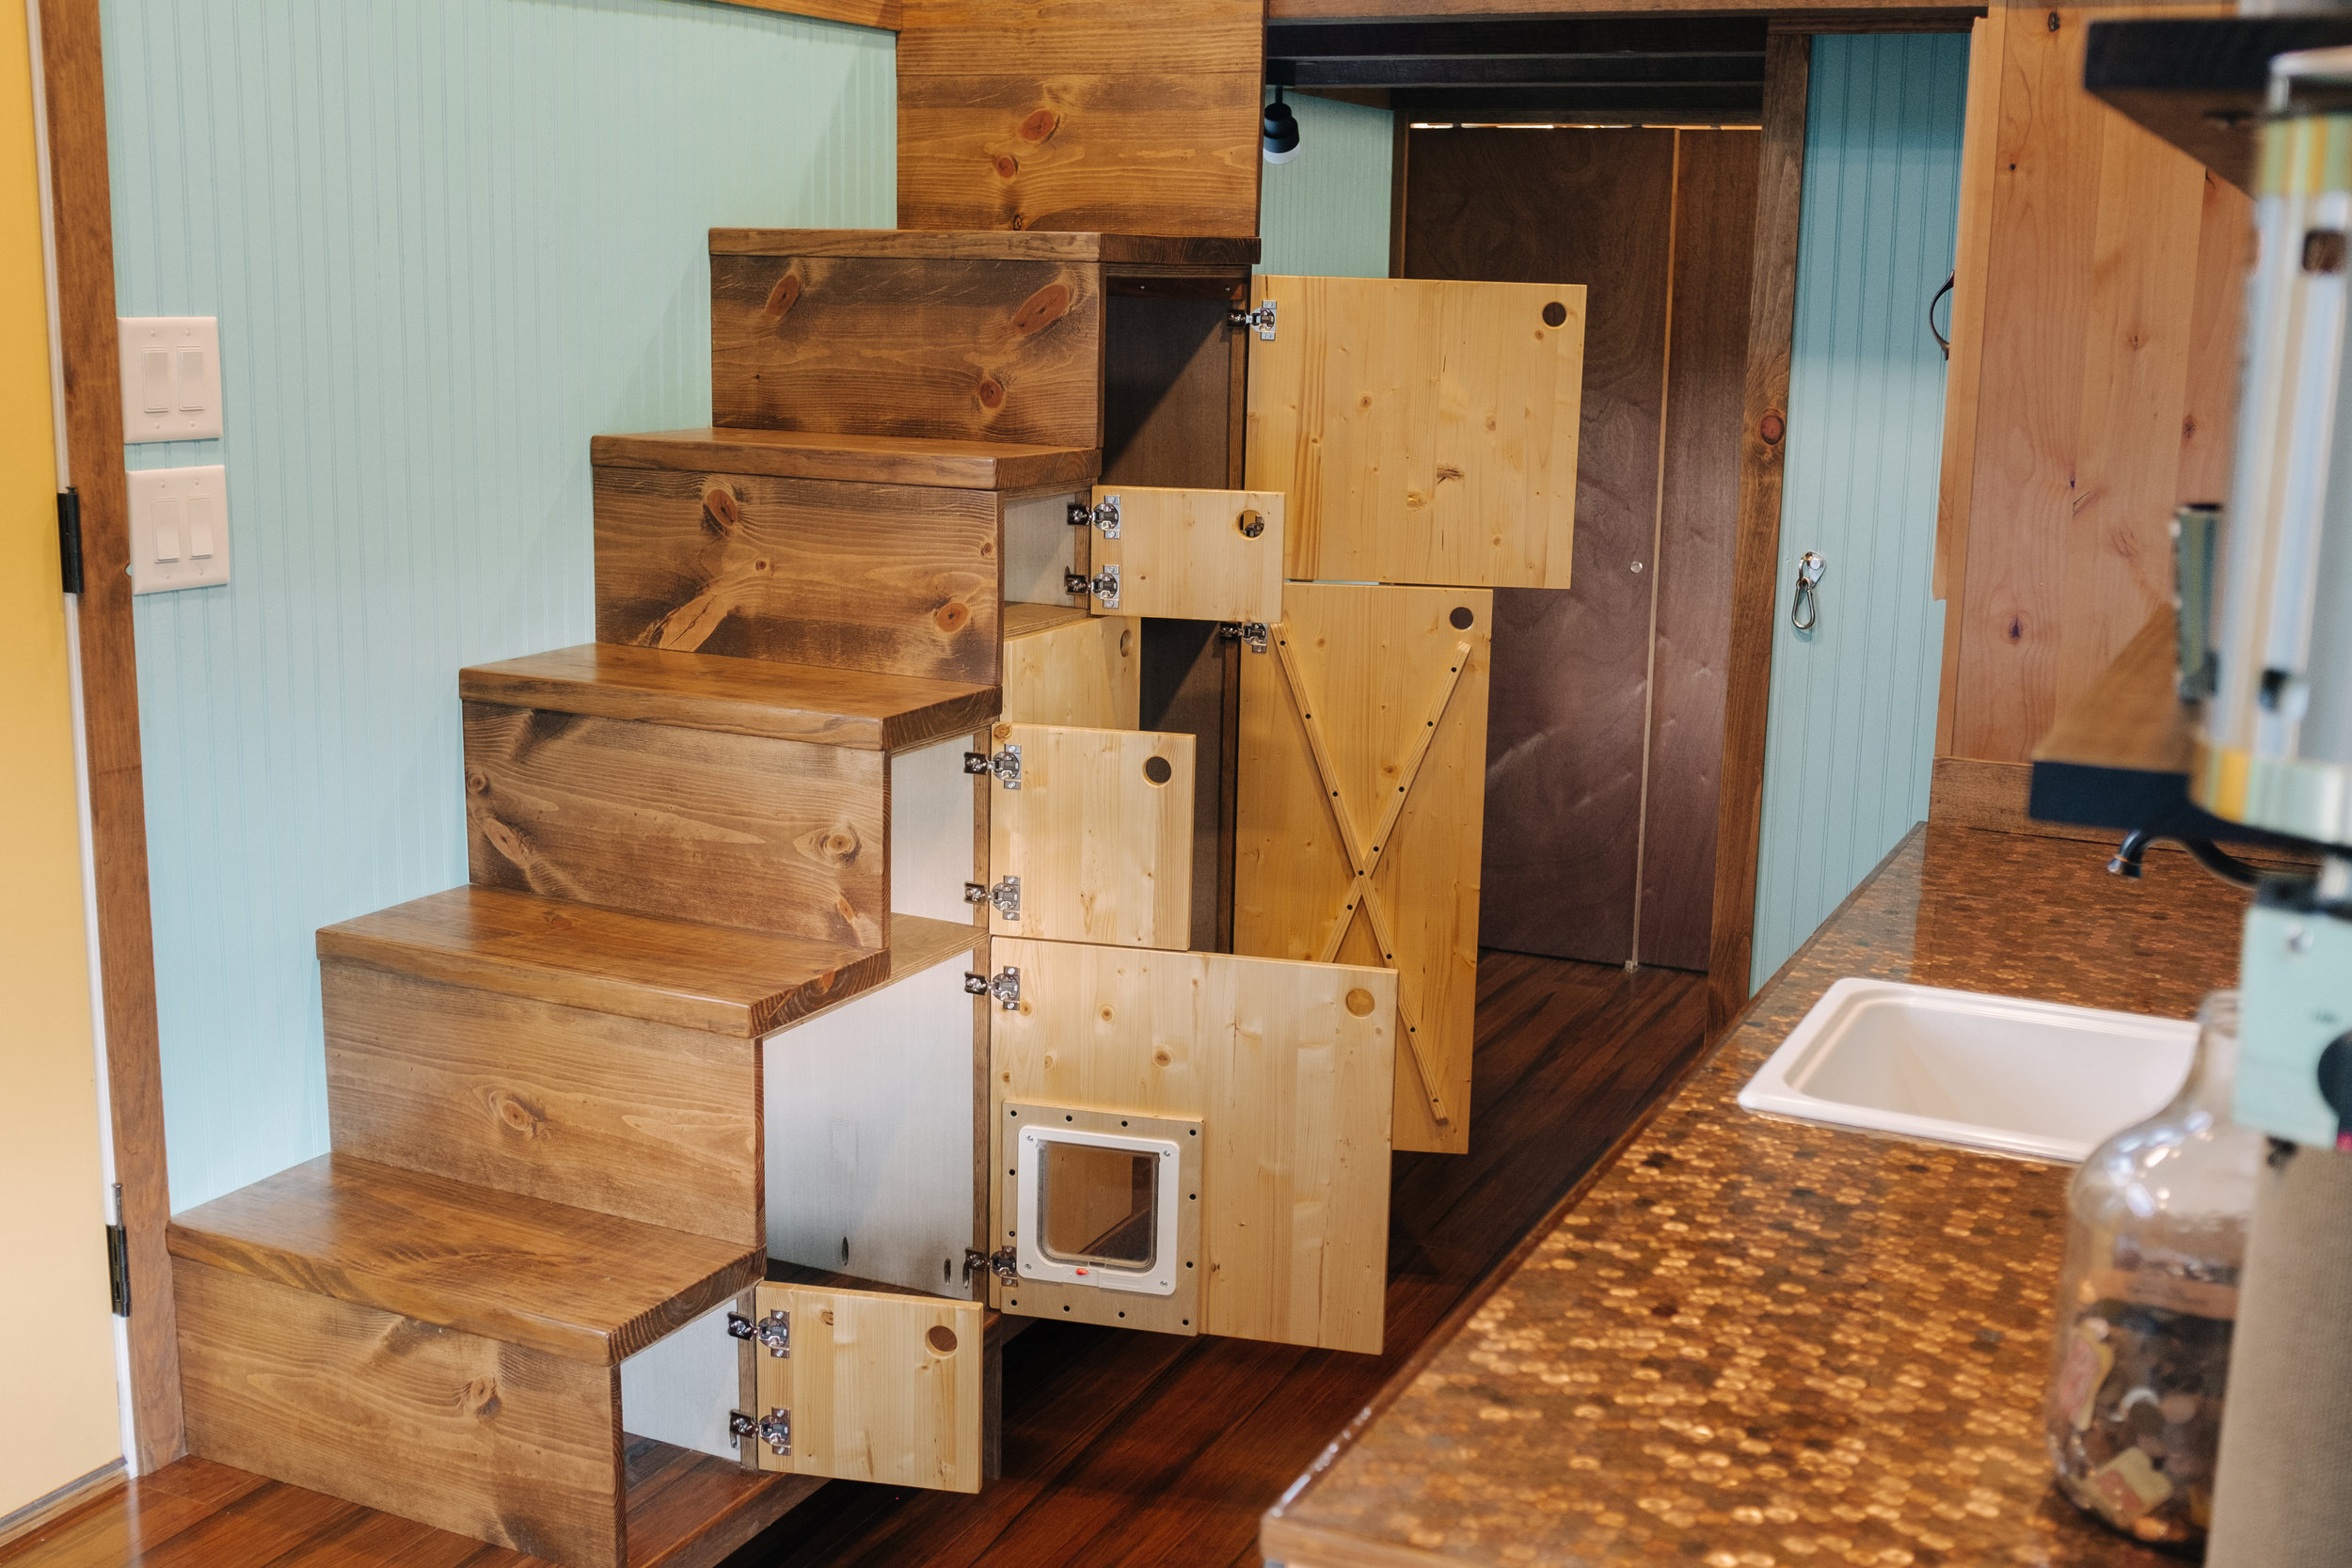 The Big Whimsy by Wind River Tiny Homes - built in storage shelving, cat door, litter box cubby with vent fan, custom penny counter top, bamboo flooring